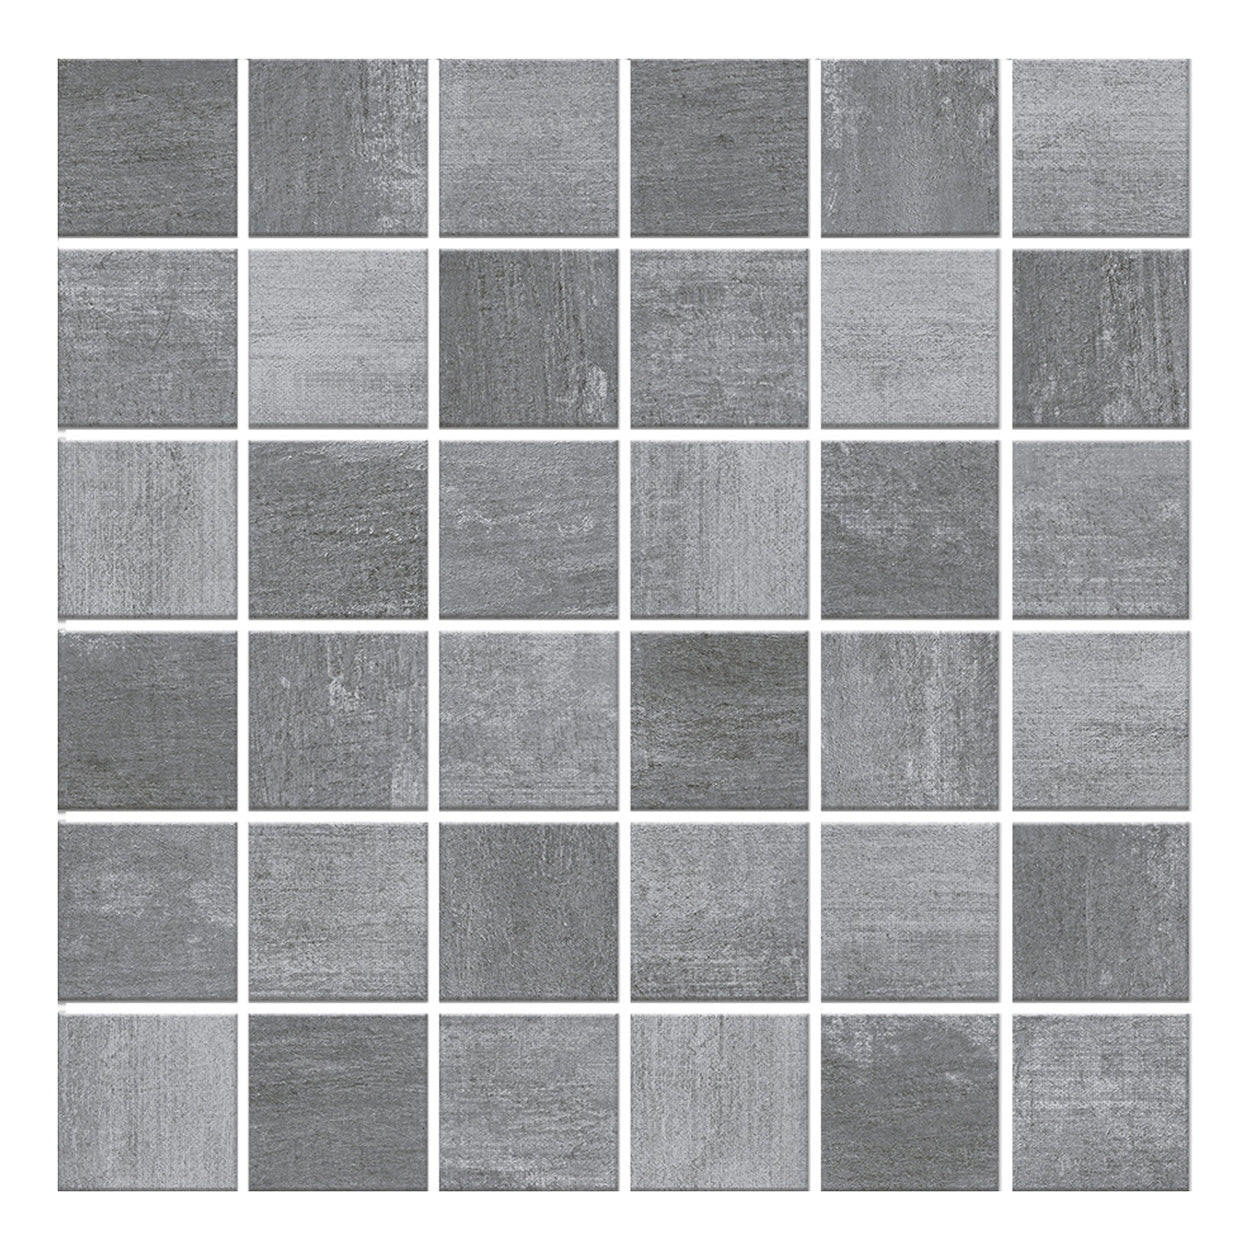 Impressions Charcoal 2x2 Shower Floor